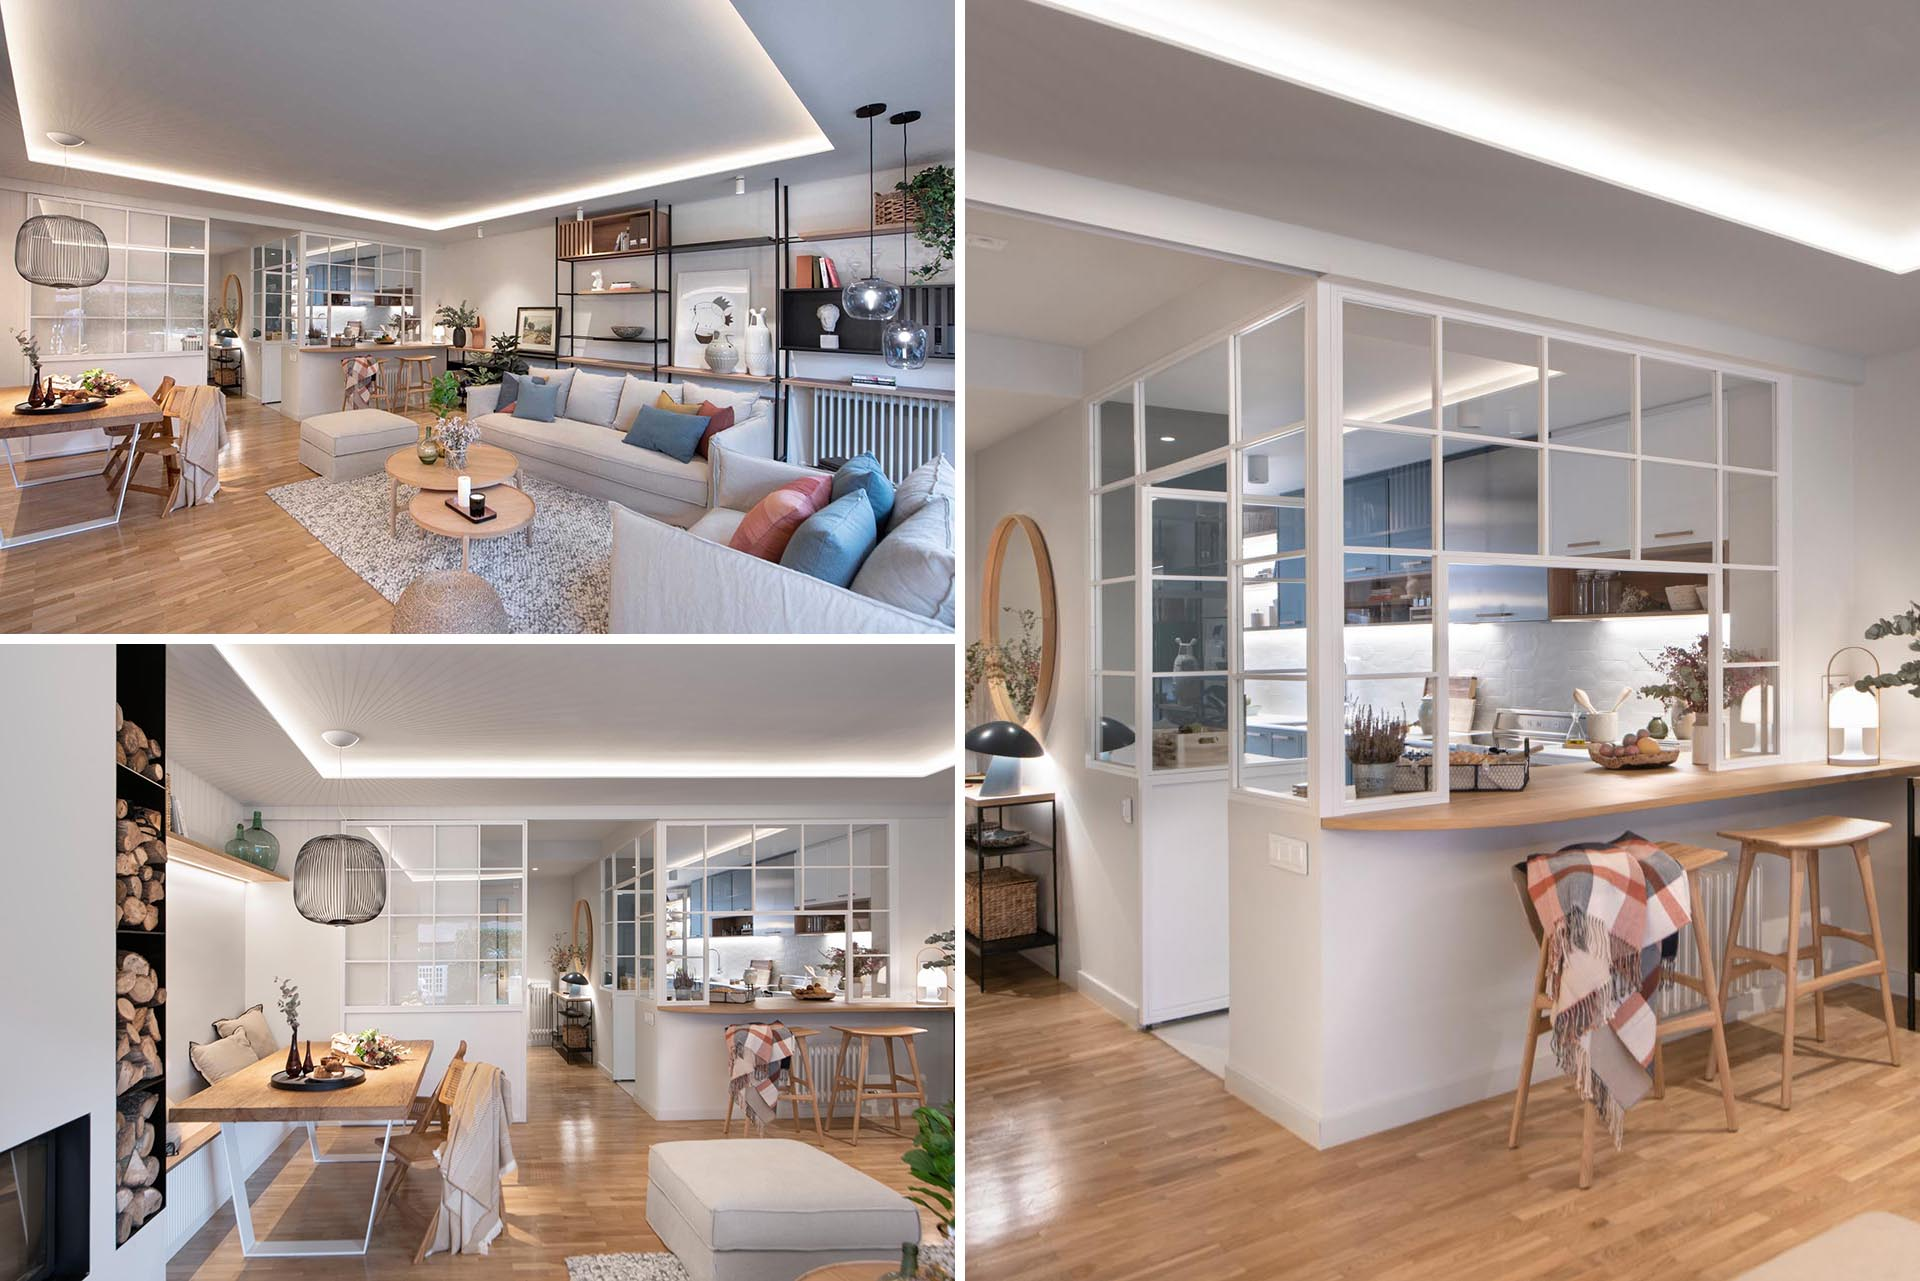 Design firm Egue y Seta, has completed the renovation of a home in Barcelona, Spain, that includes three levels, and a kitchen that's enclosed within interior windows.